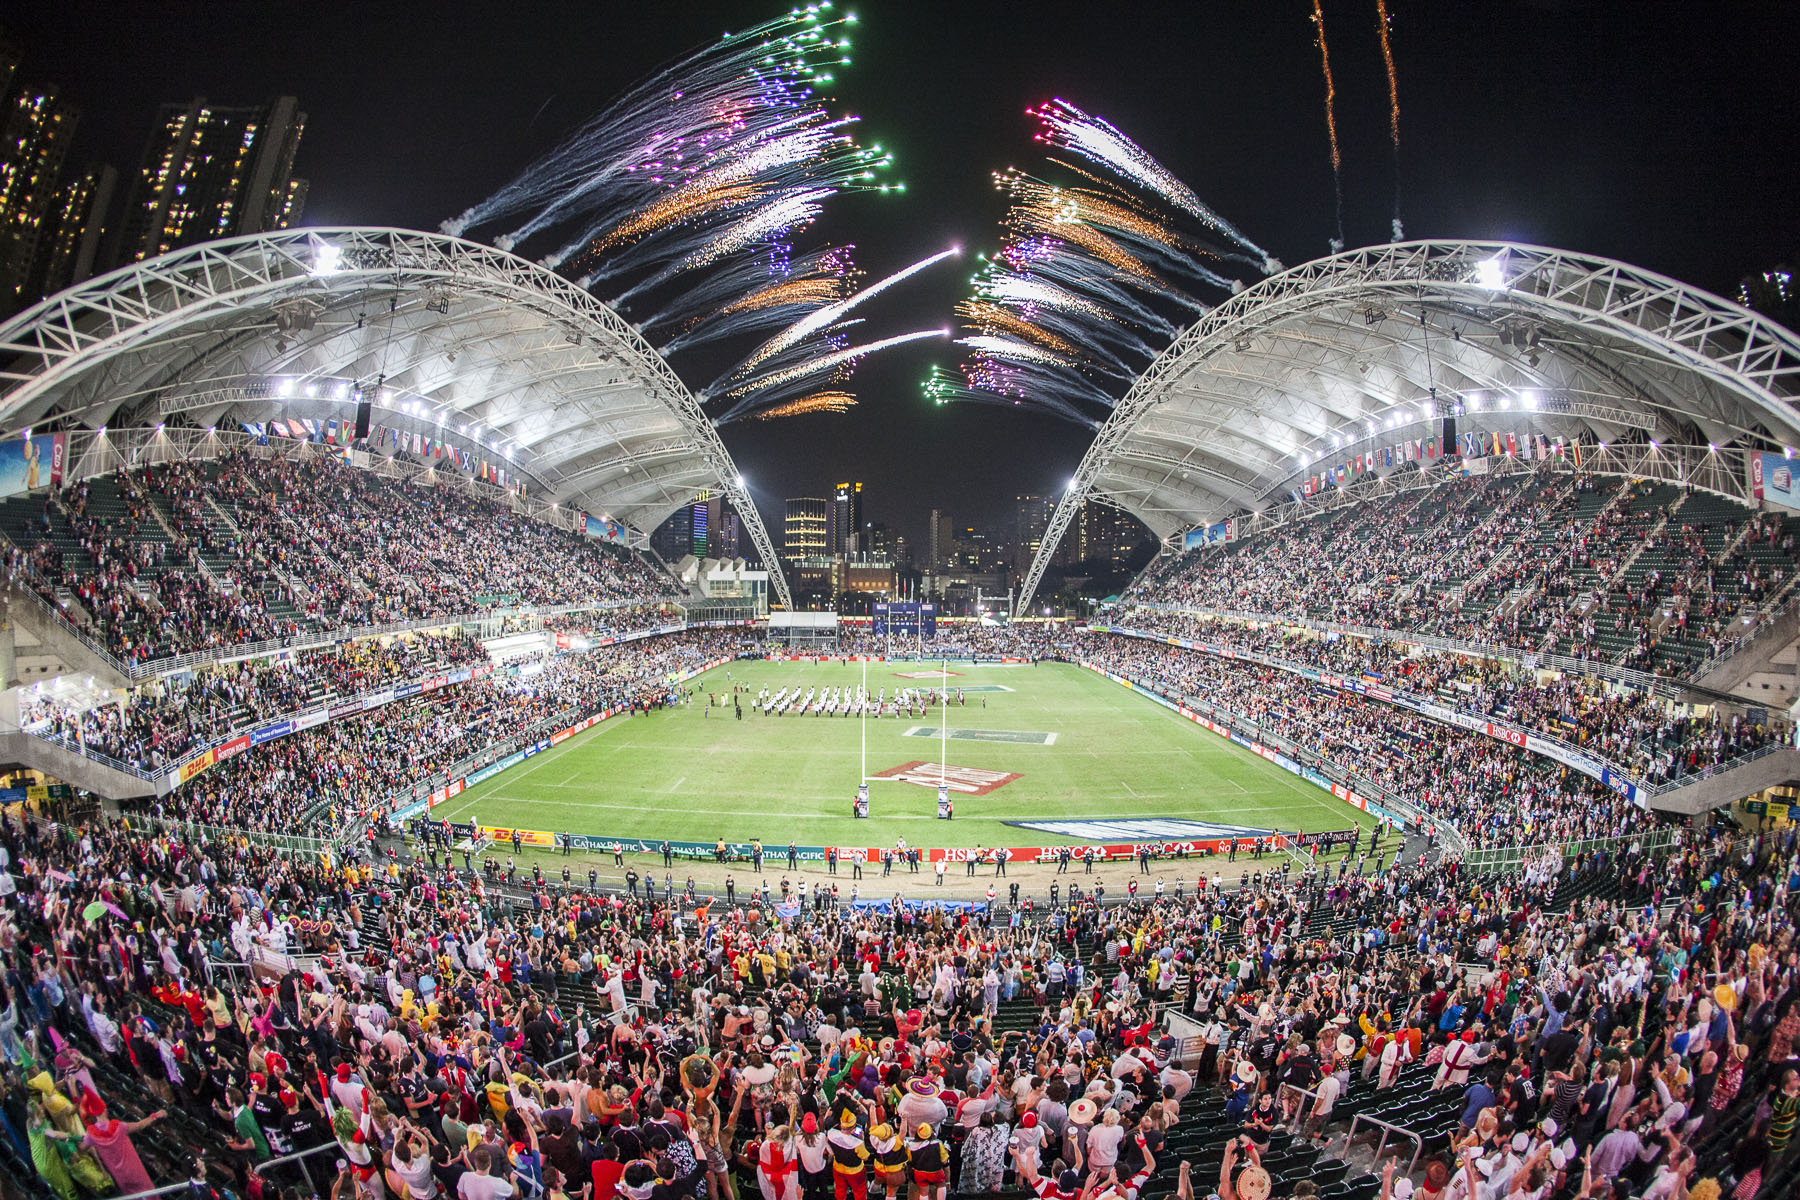 Hong-Kong-Sevens-Final-Live-Streaming.jpg